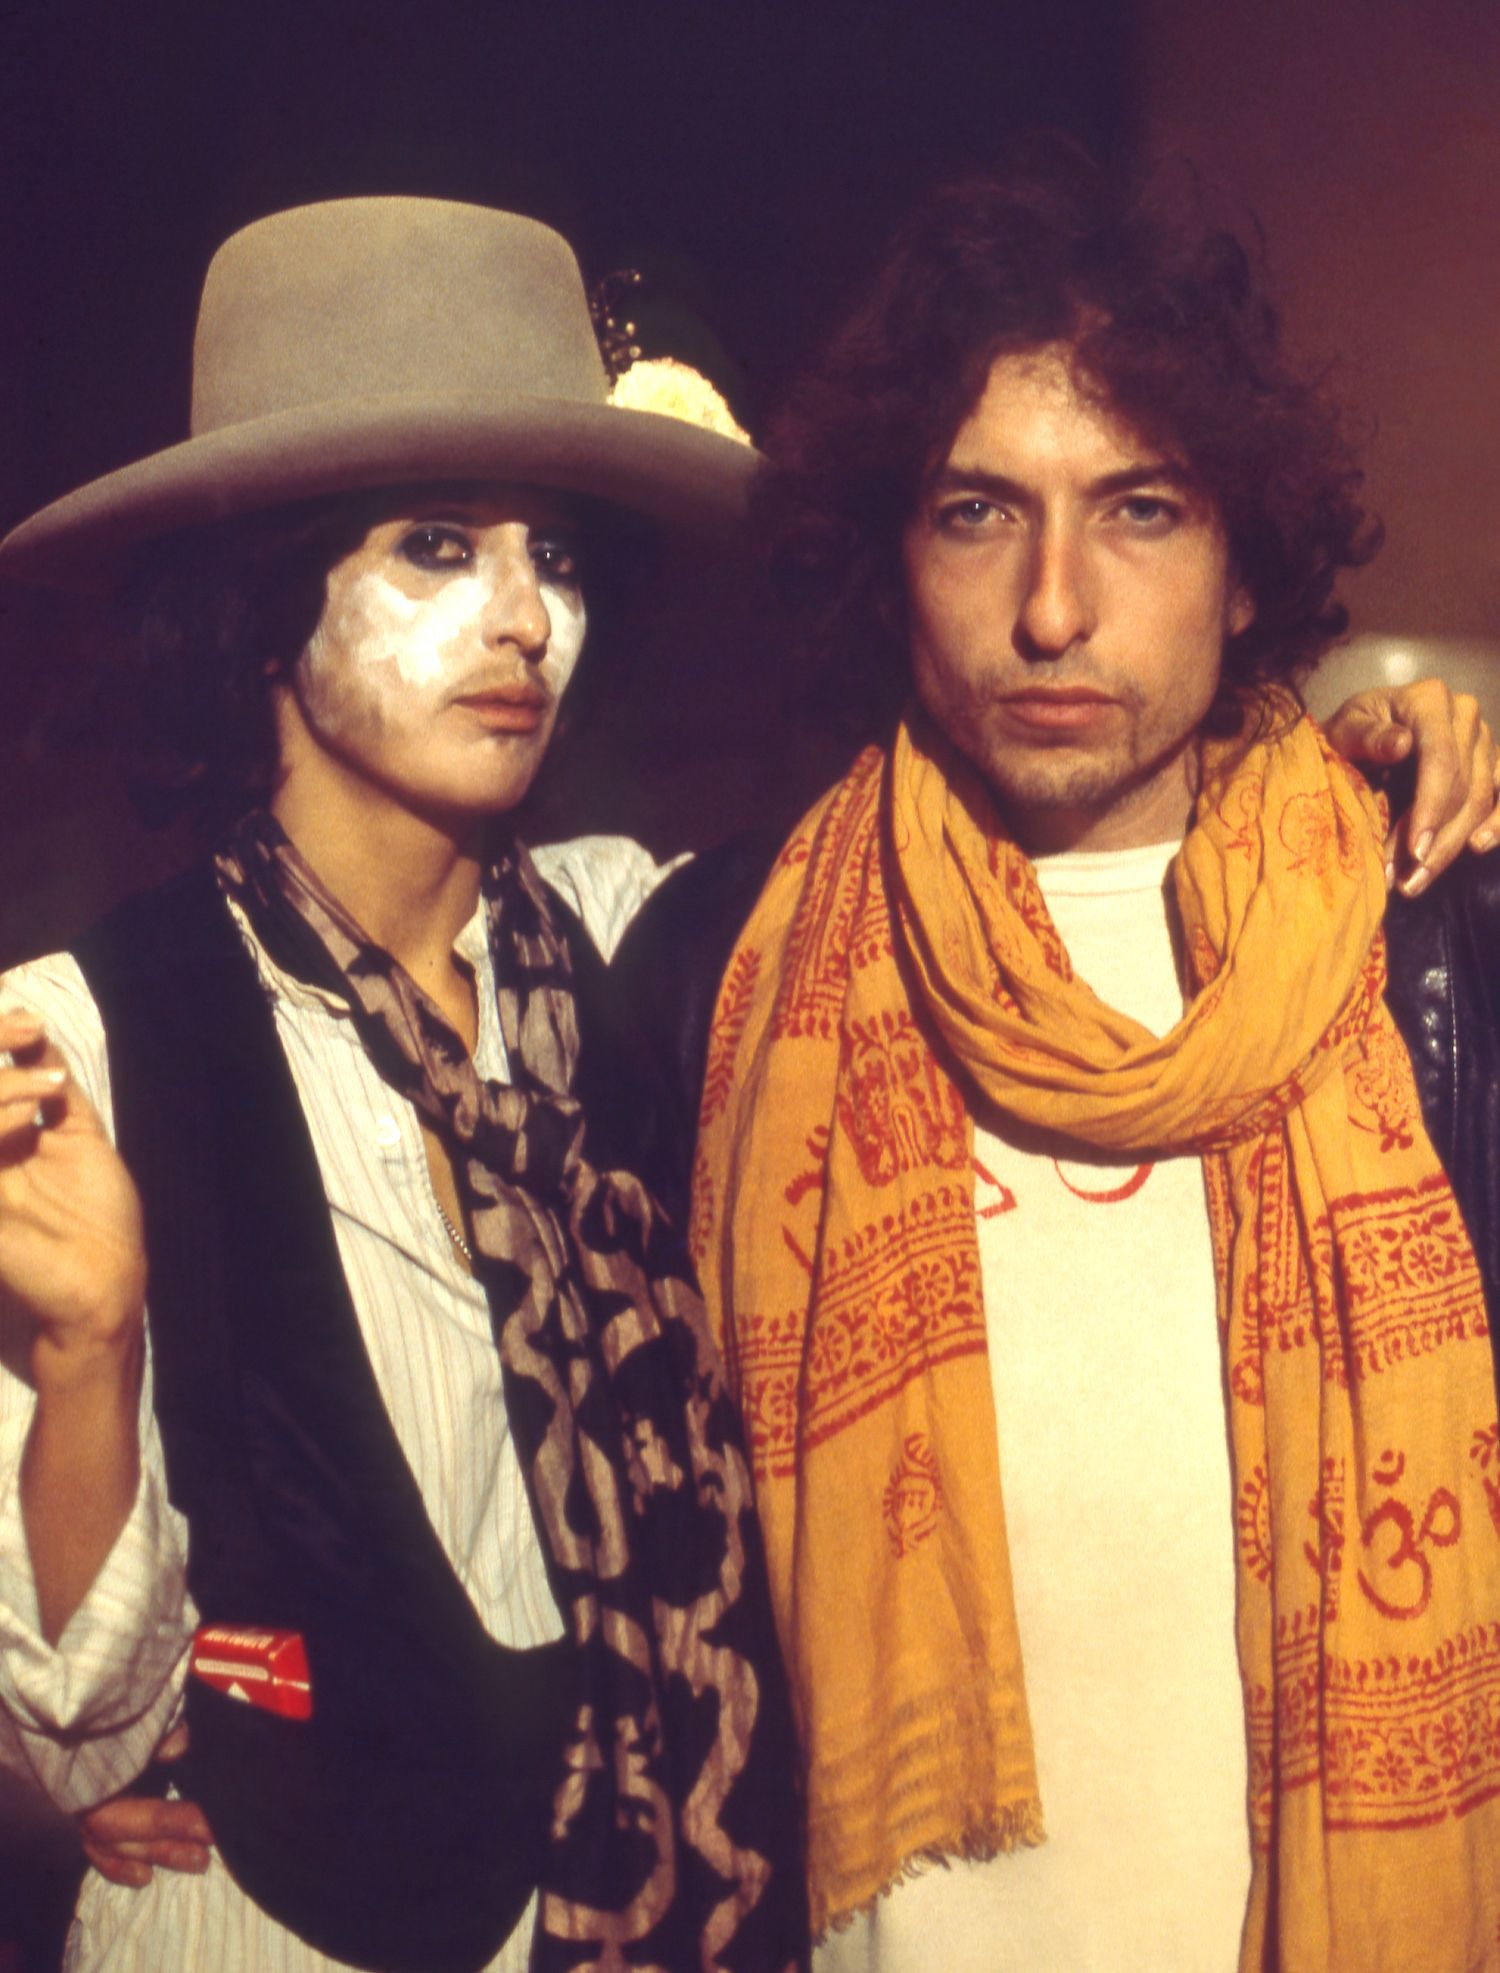 Don't Believe Everything You See in Martin Scorsese's Bob Dylan Documentary